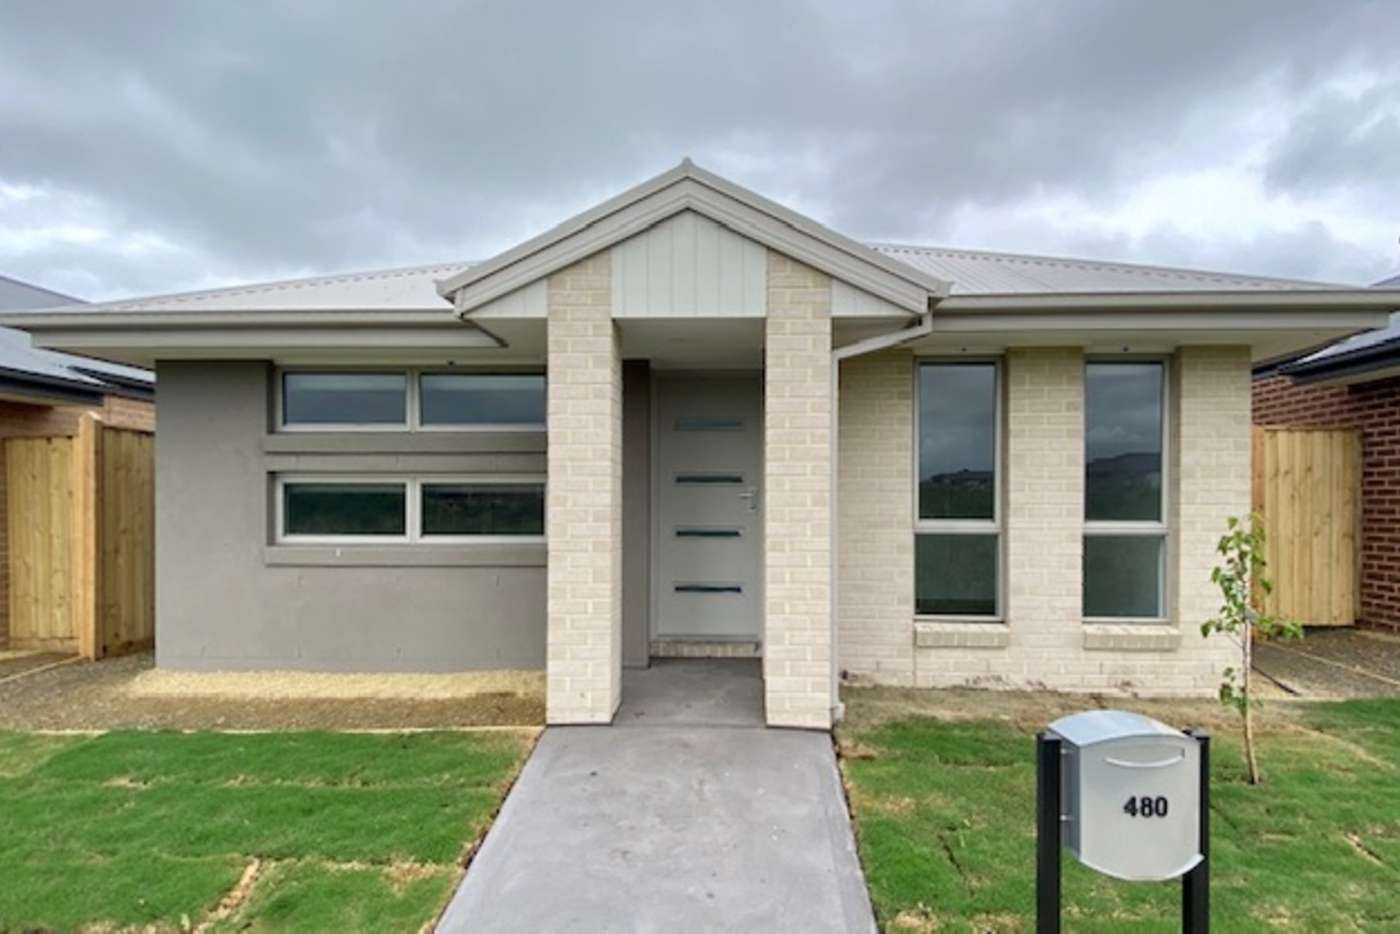 Main view of Homely house listing, 480 Casey Fields Boulevard, Cranbourne East VIC 3977